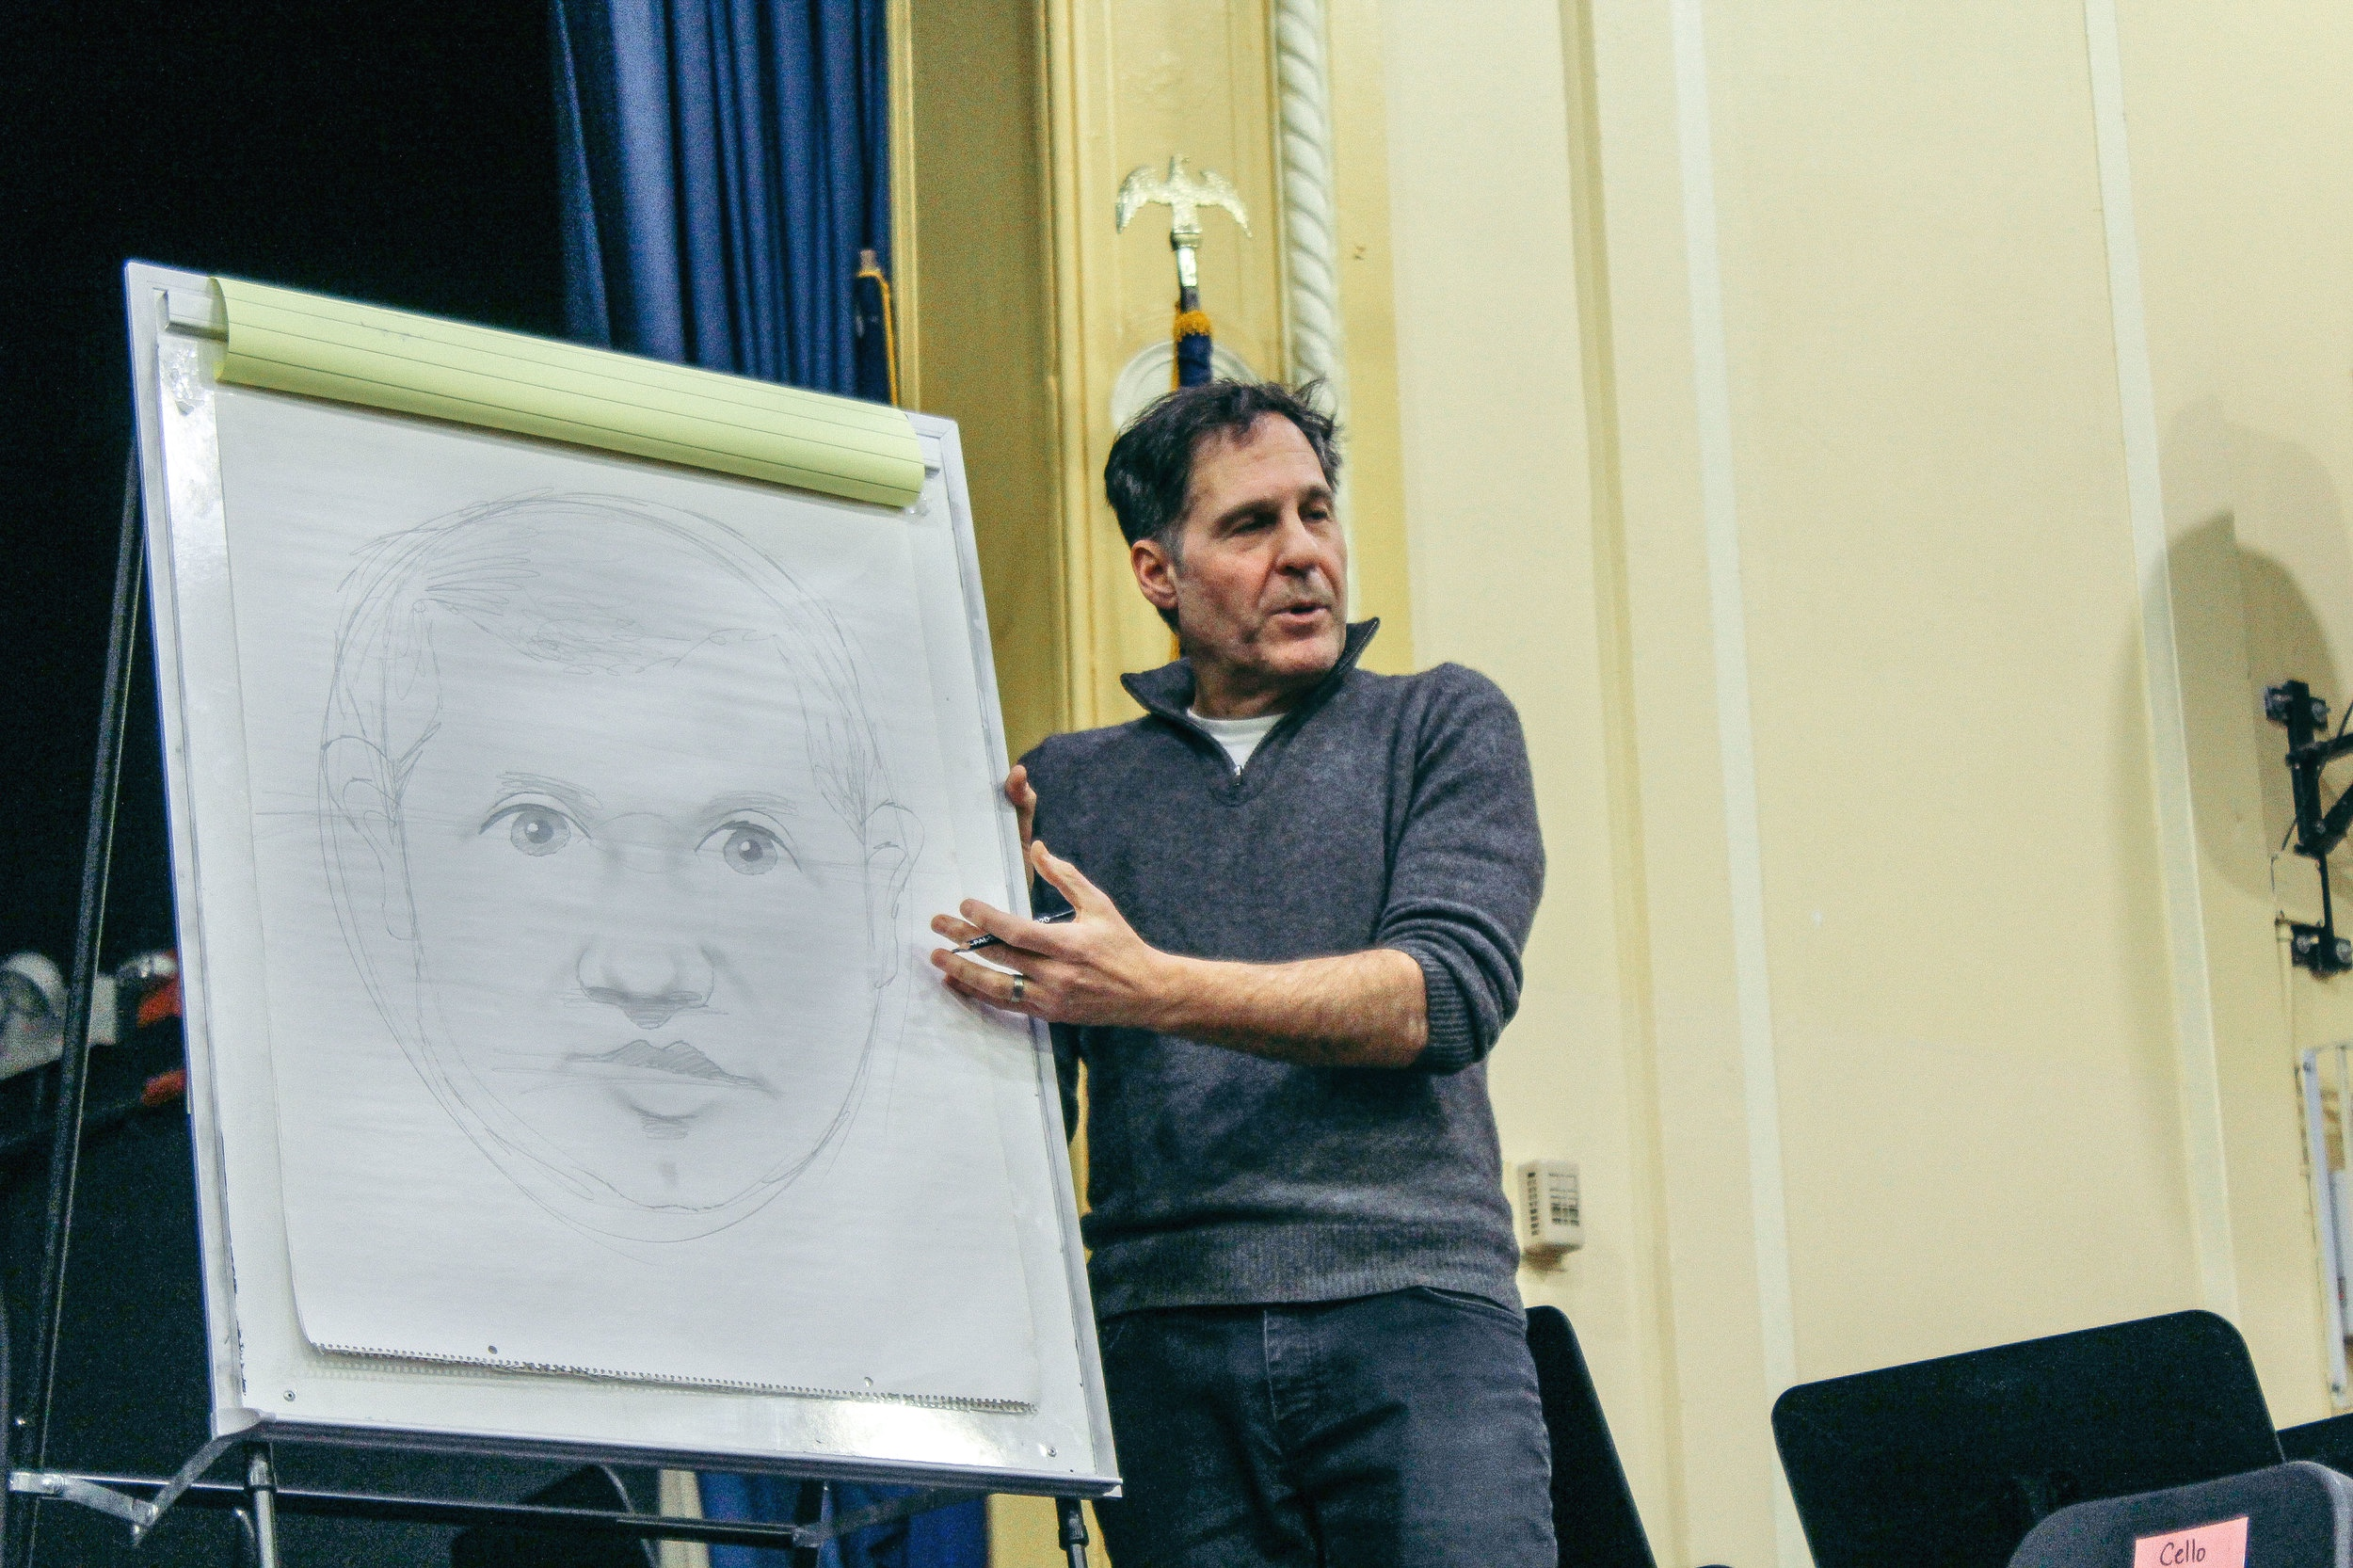 Author Peter Catalanotto showed students different drawing techniques to help students improve their illustrations.